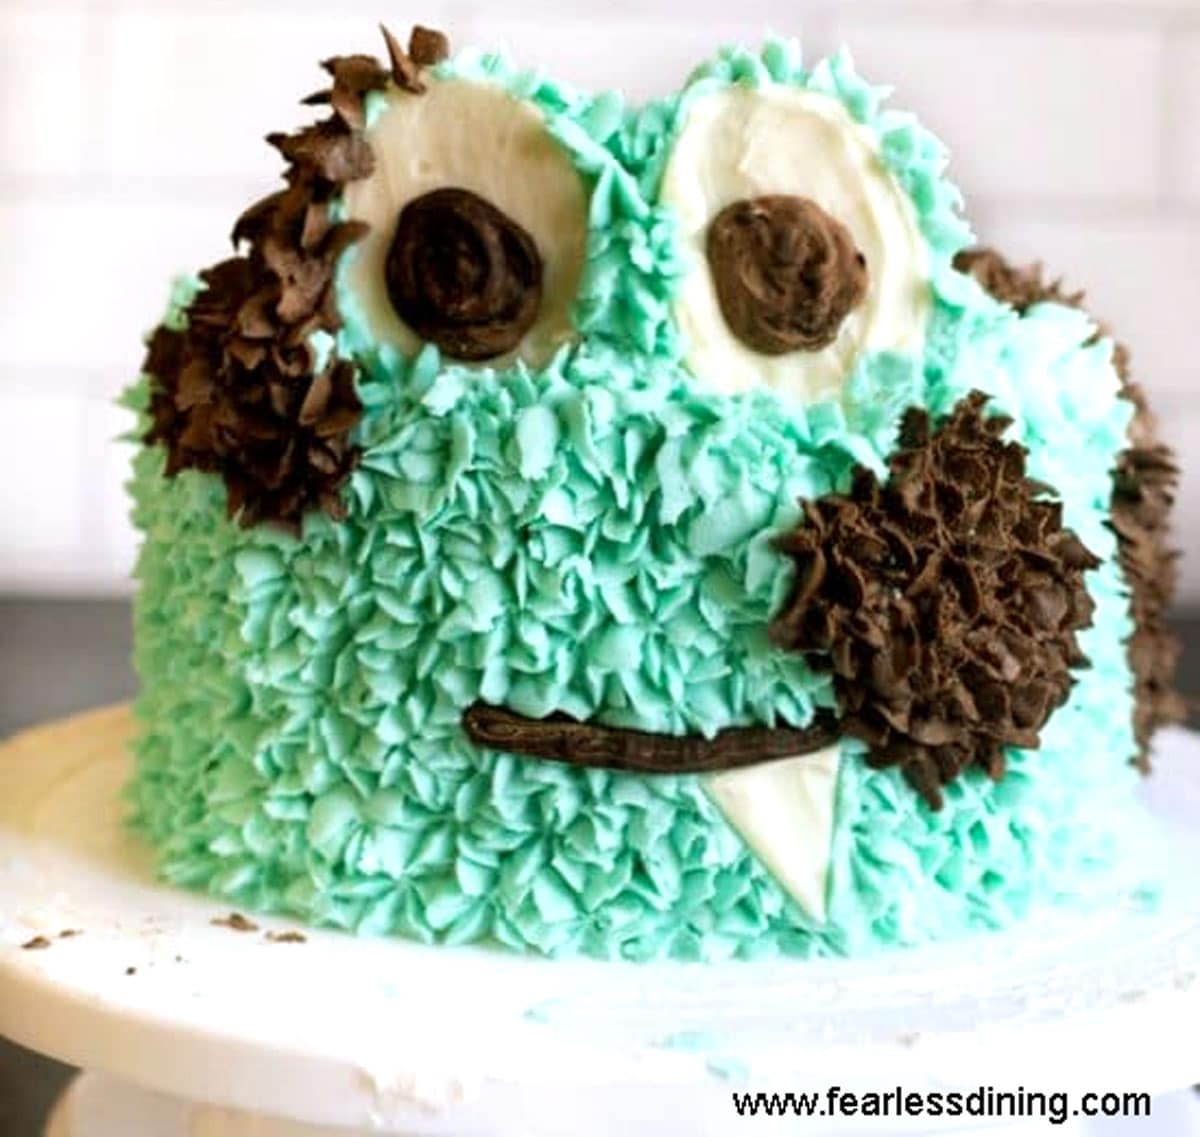 a finished cake decorated like a turquoise monster